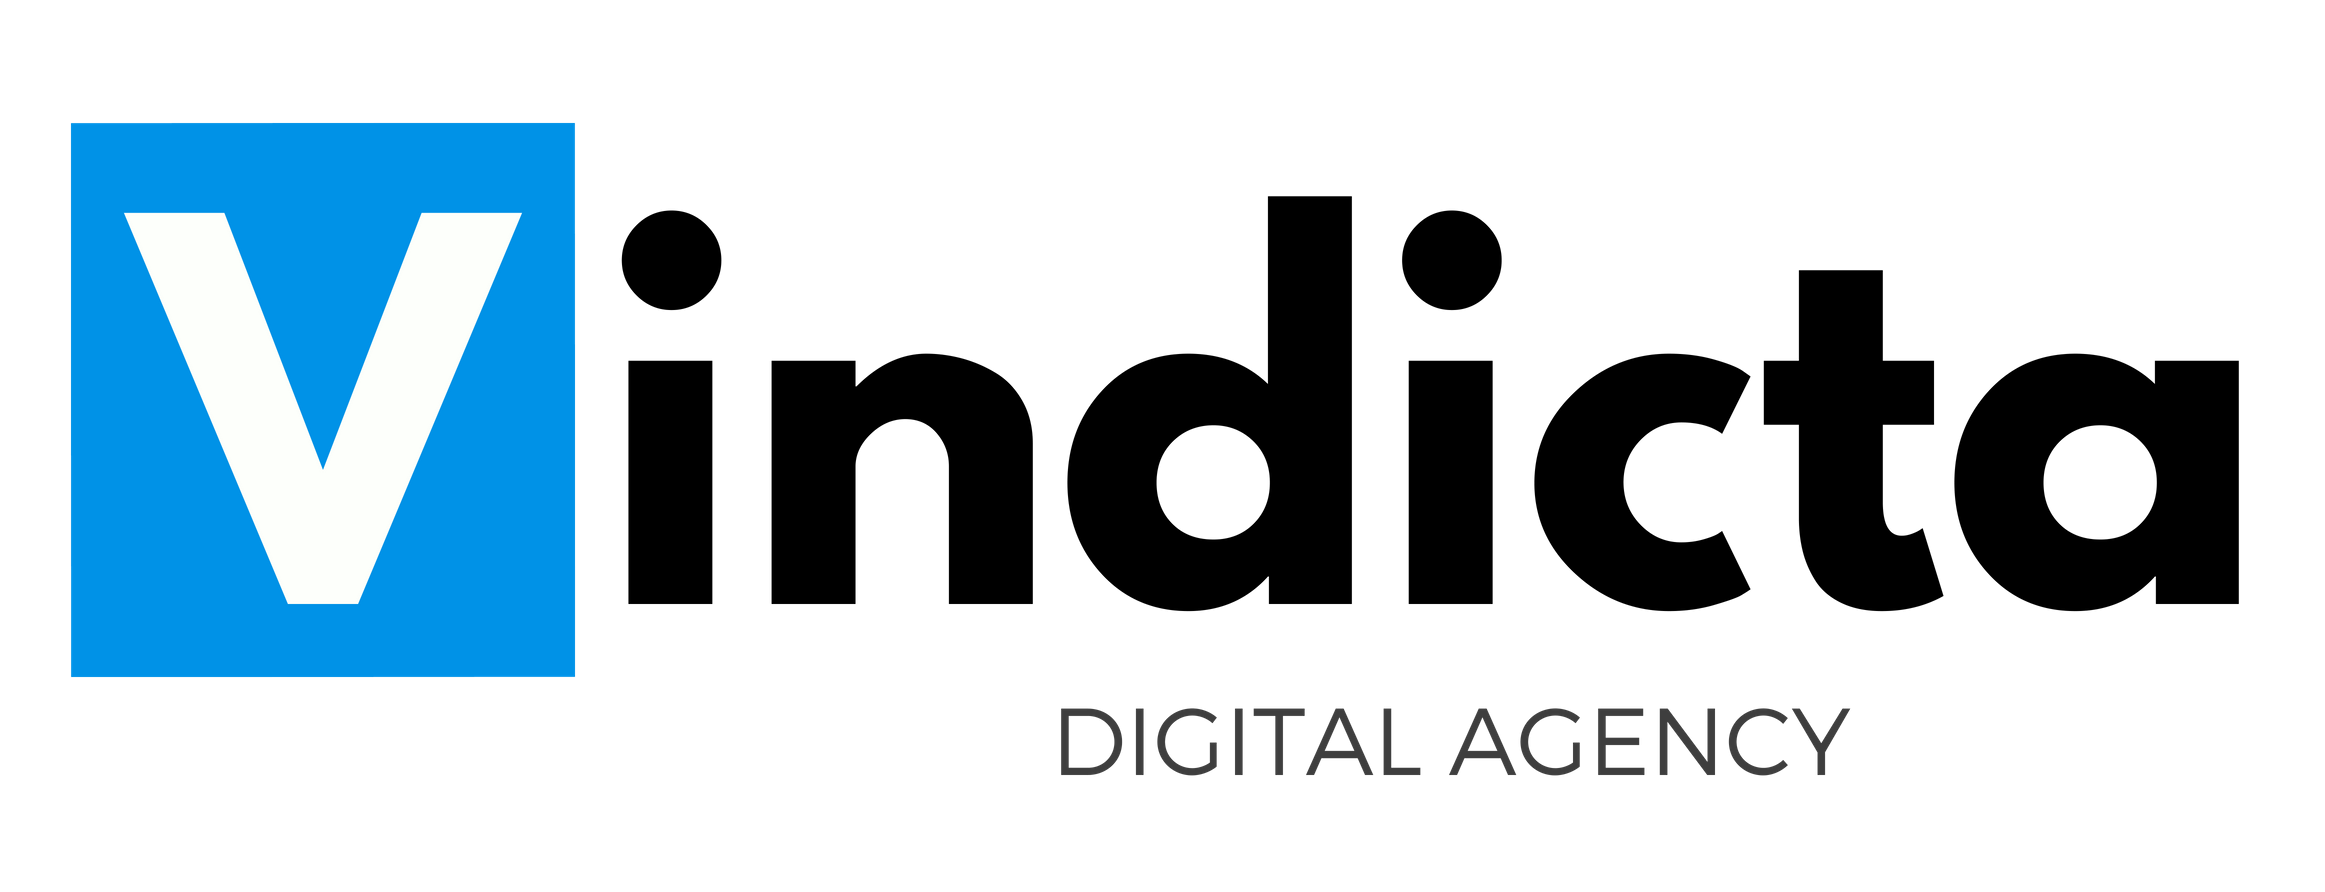 Vindicta Digital – Web, SEO & Digital Agency